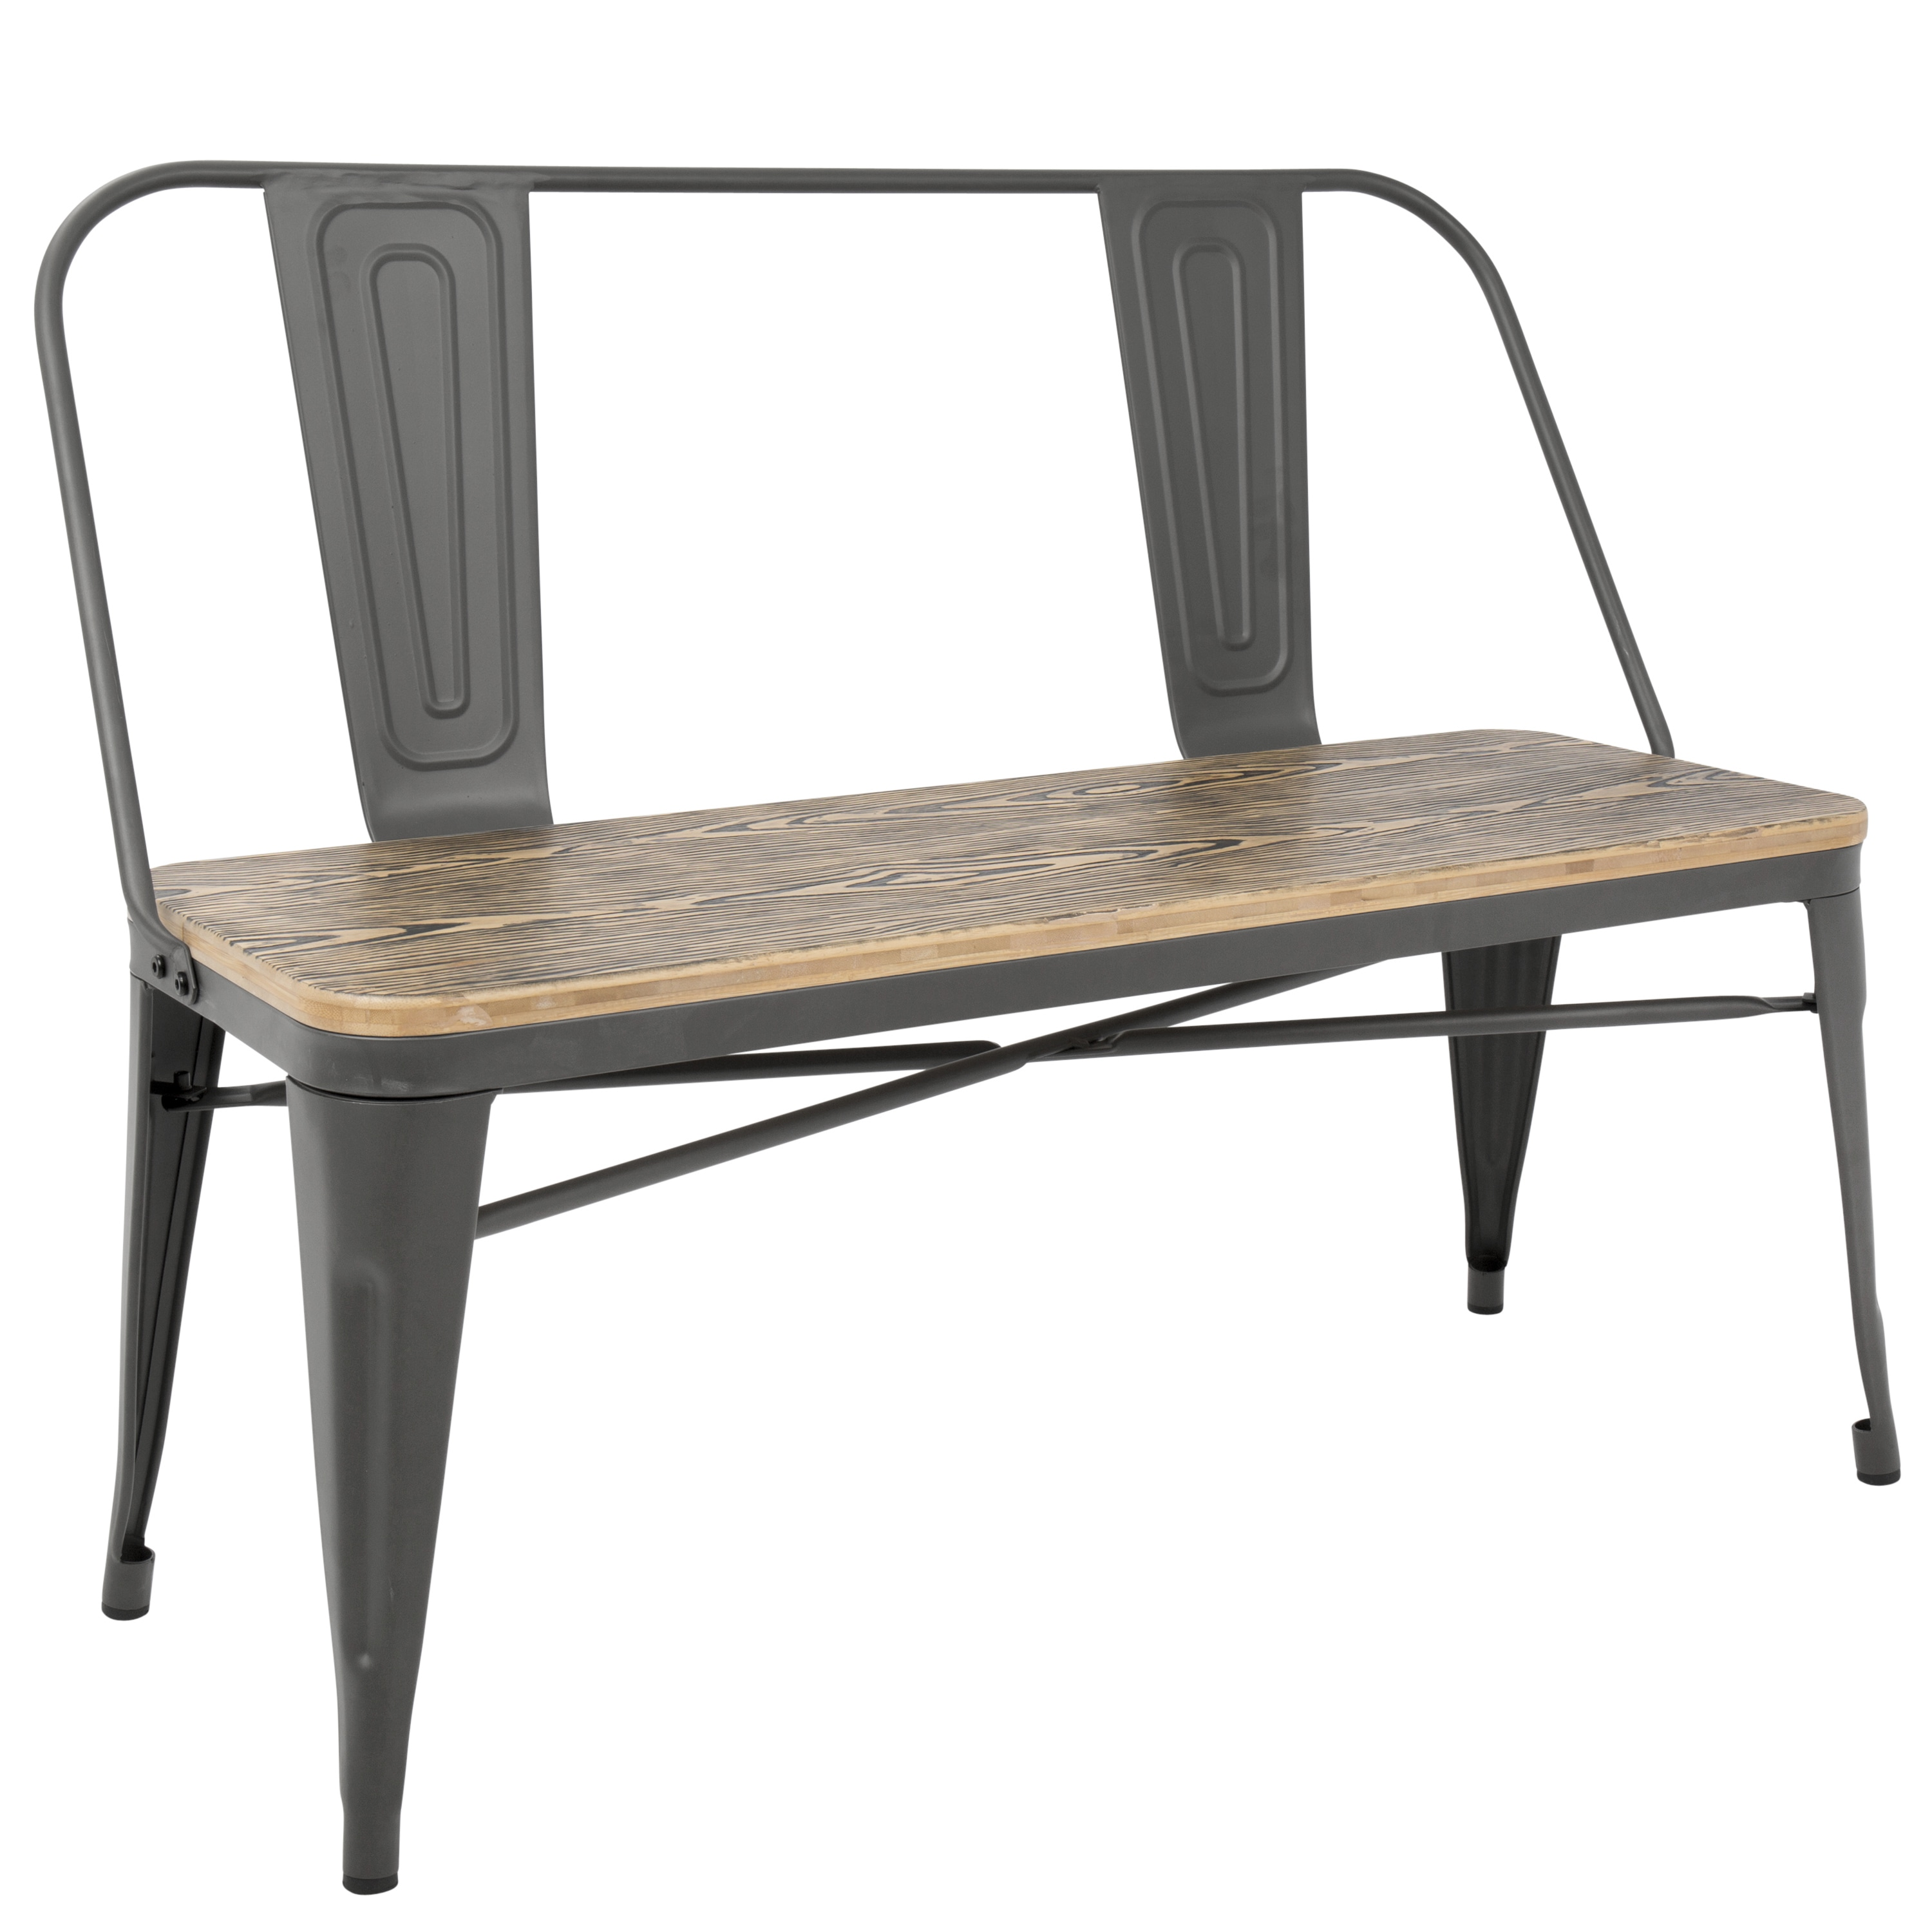 Super Carbon Loft Boyer Industrial Metal And Wood Dining Entryway Bench Uwap Interior Chair Design Uwaporg